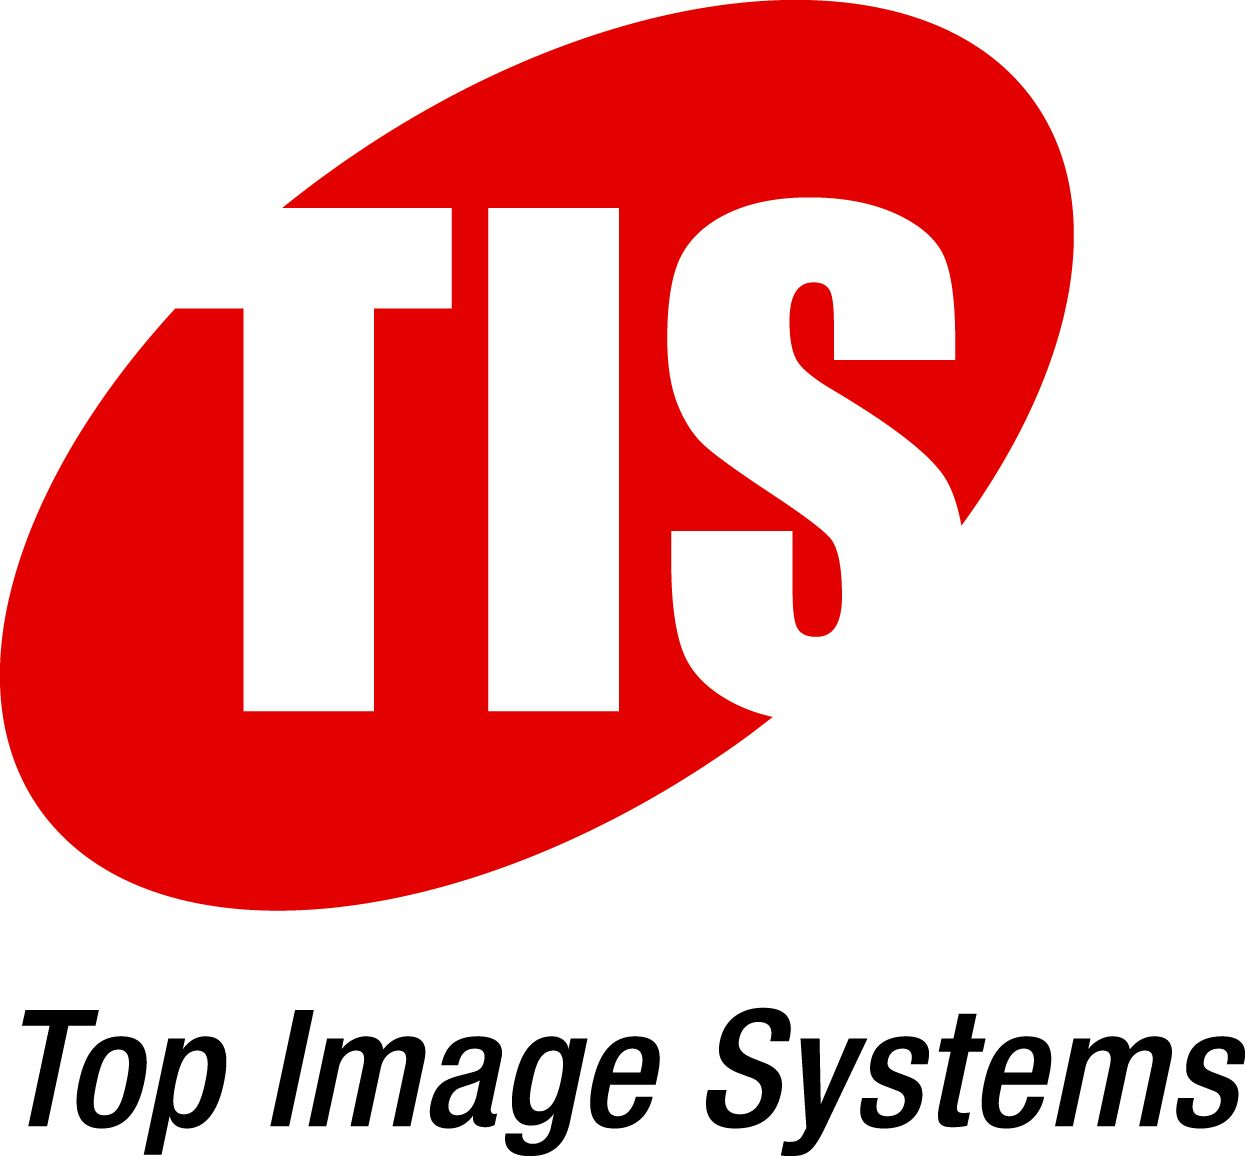 Top Image Systems Files 2015 Annual Report on Form 20-F